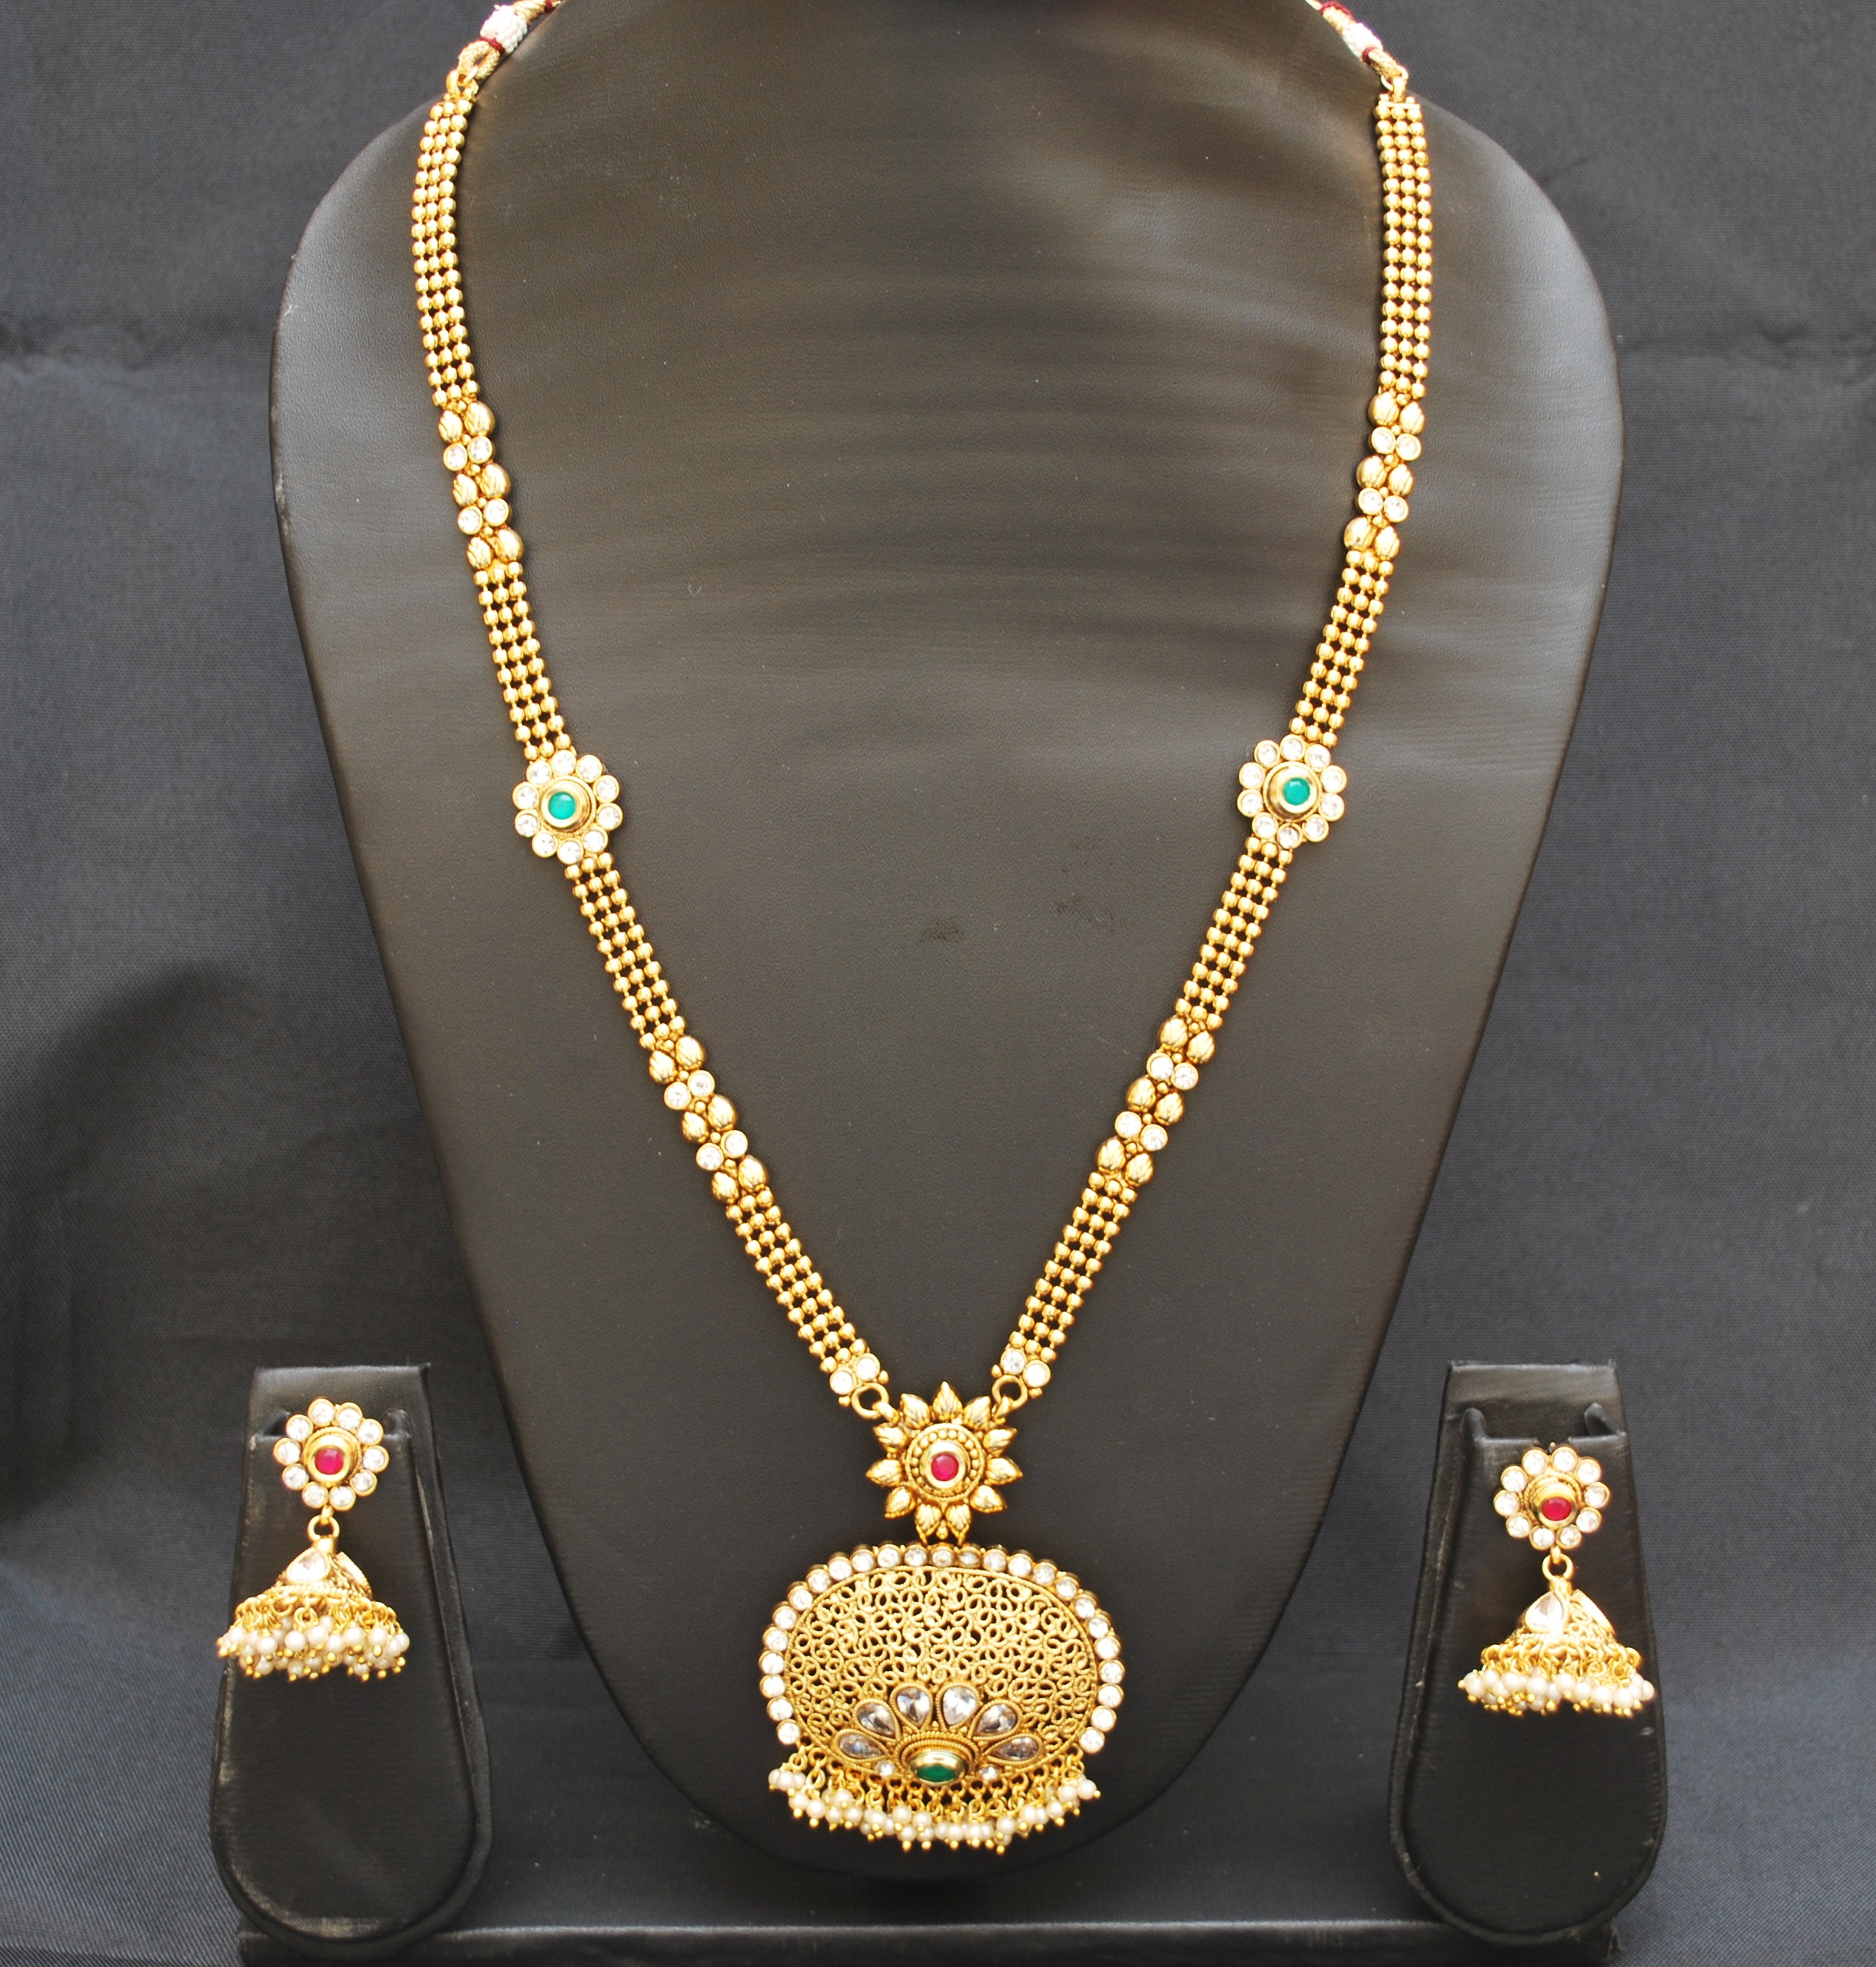 artificial imitation jewellery one-of-kind copper base necklace set-1